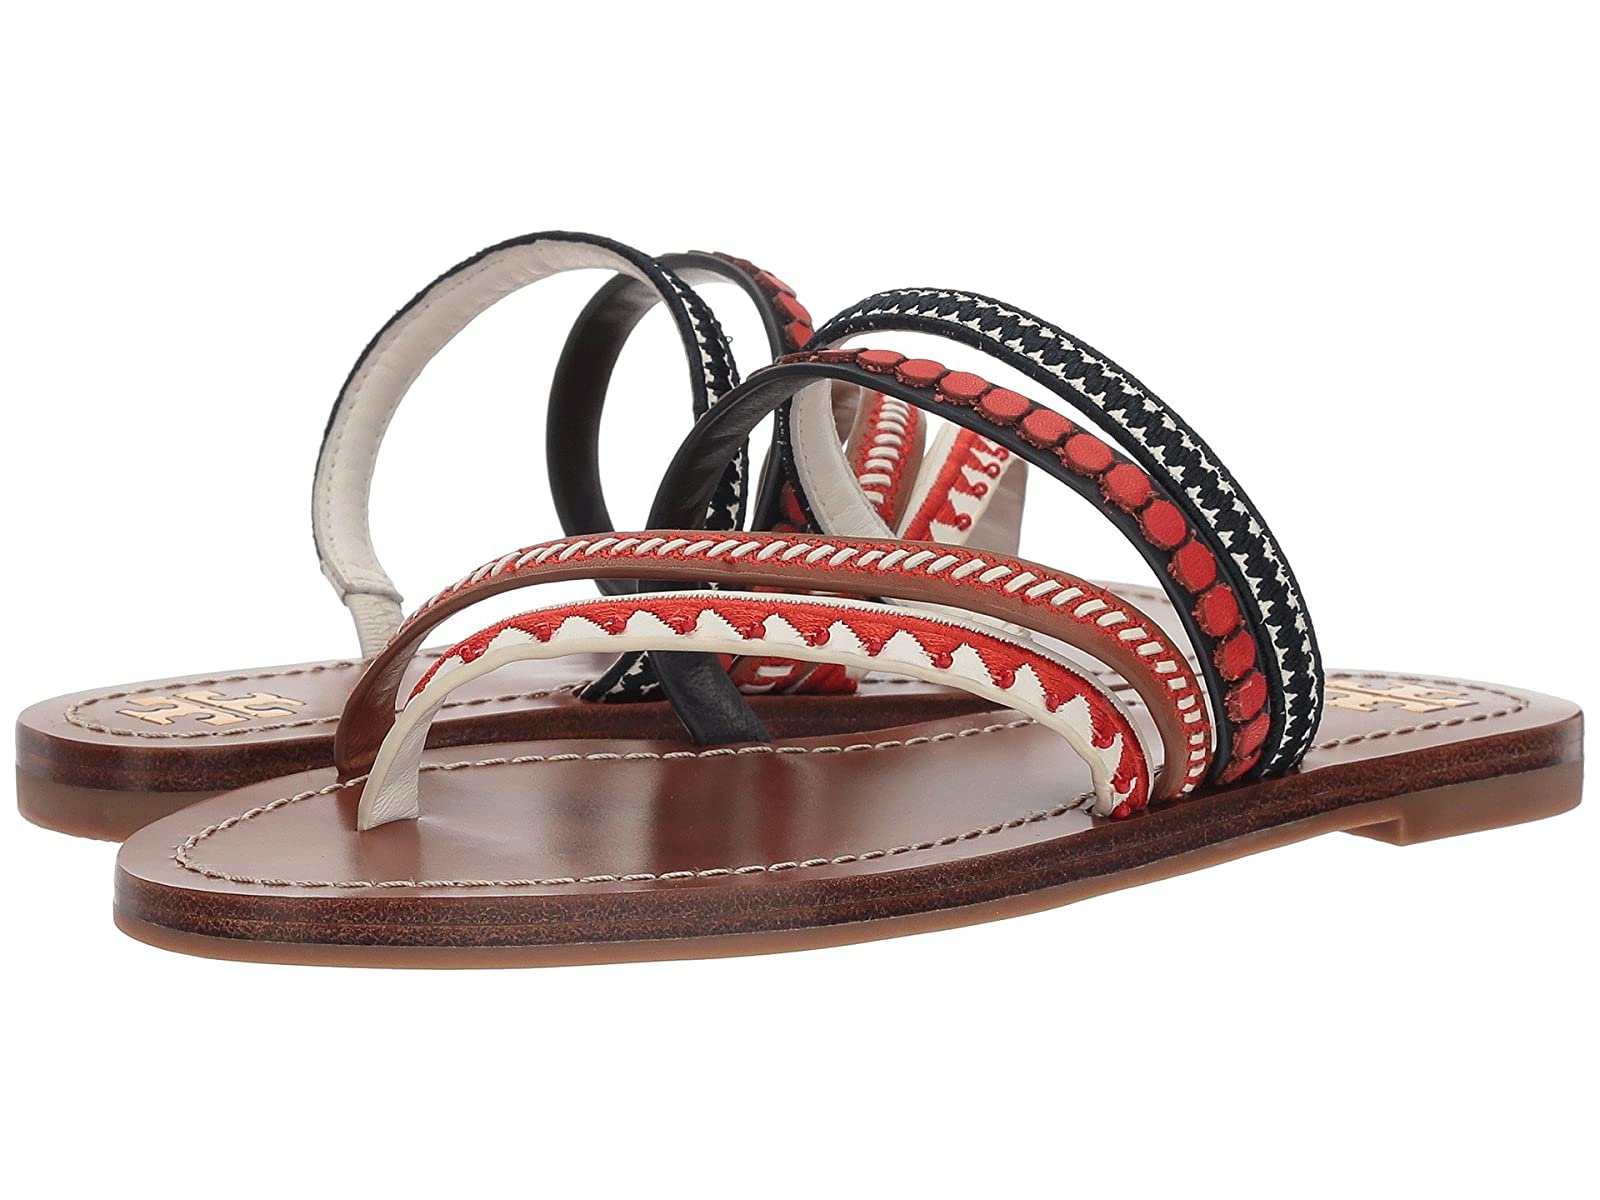 Tory Burch Patos Embroidered SandalCheap and distinctive eye-catching shoes